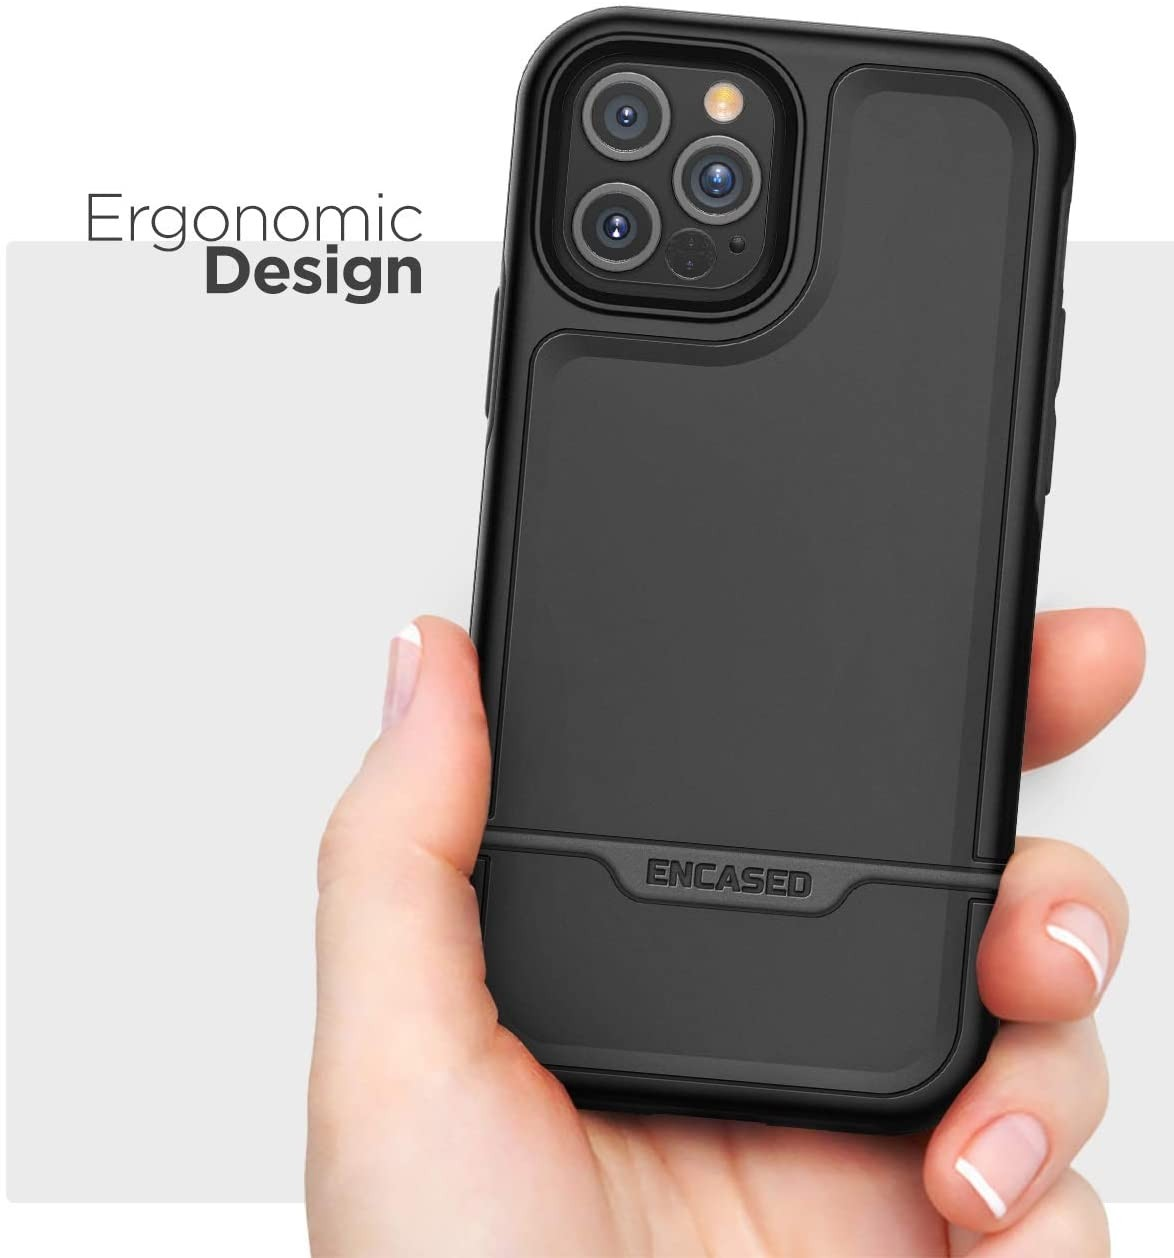 Encased Protective Rebel Series Heavy Duty Case for iPhone 12 Pro Max - Black, RB129BK